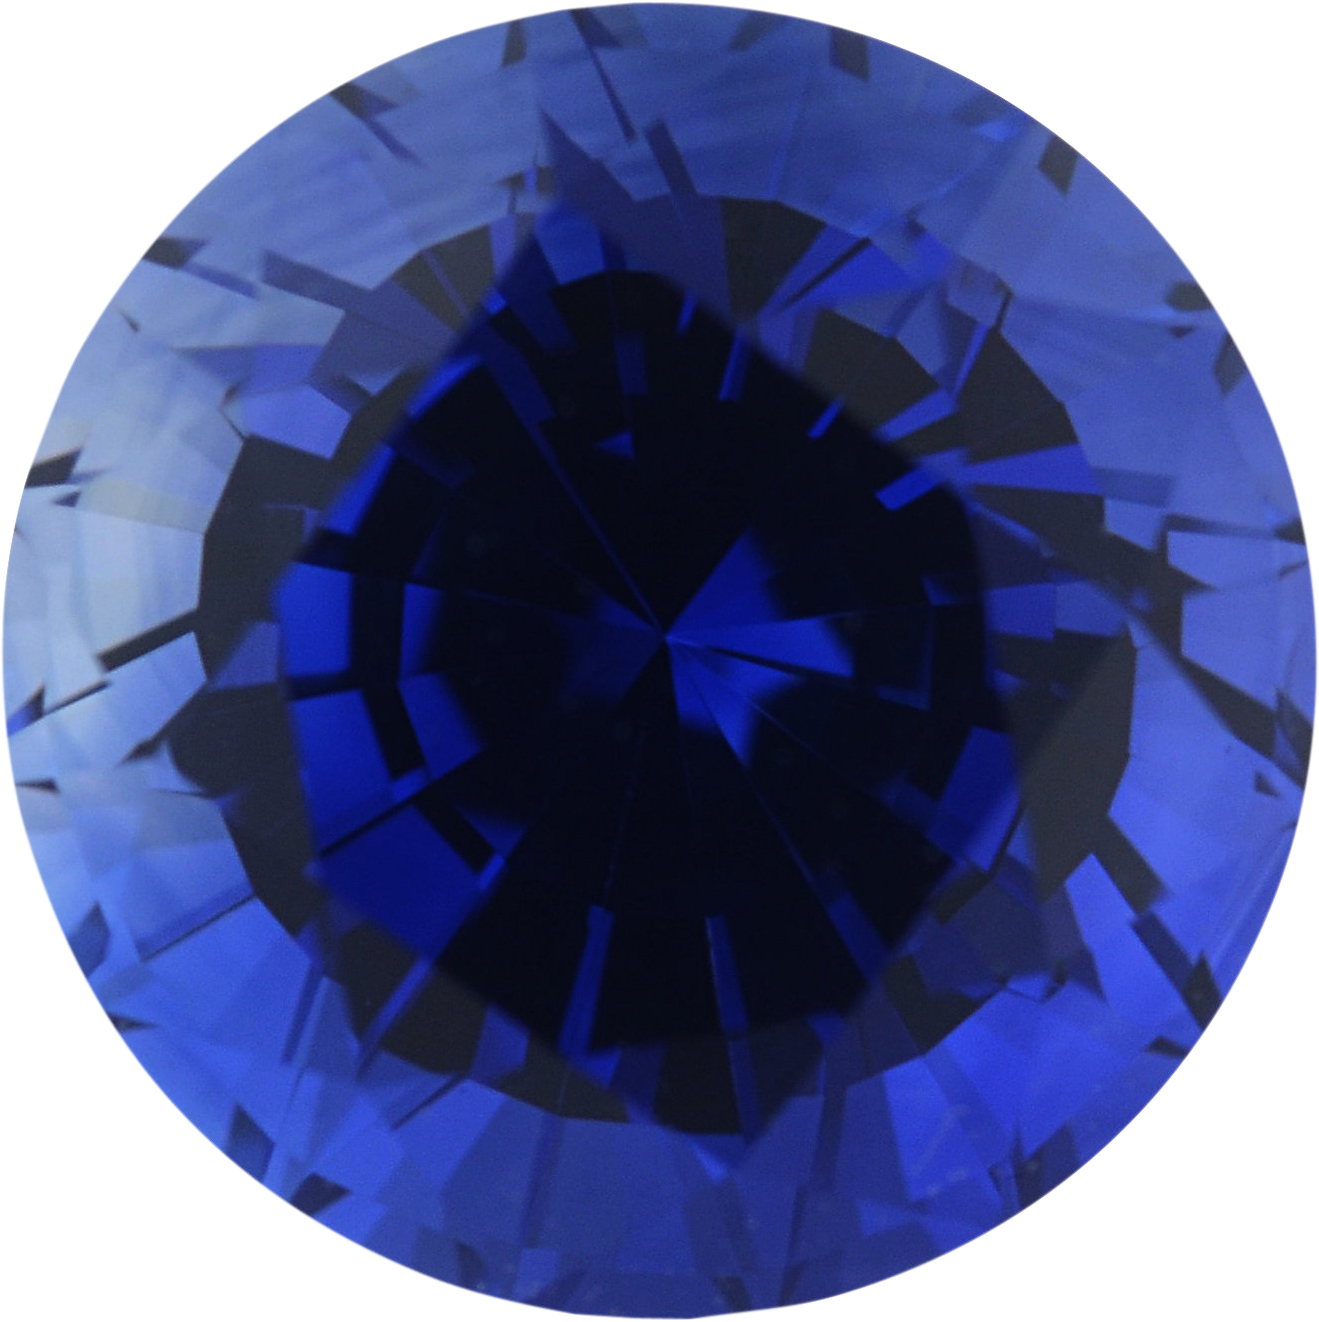 1.38 carats Blue Loose Sapphire Gemstone in Round Cut, 6.33 mm